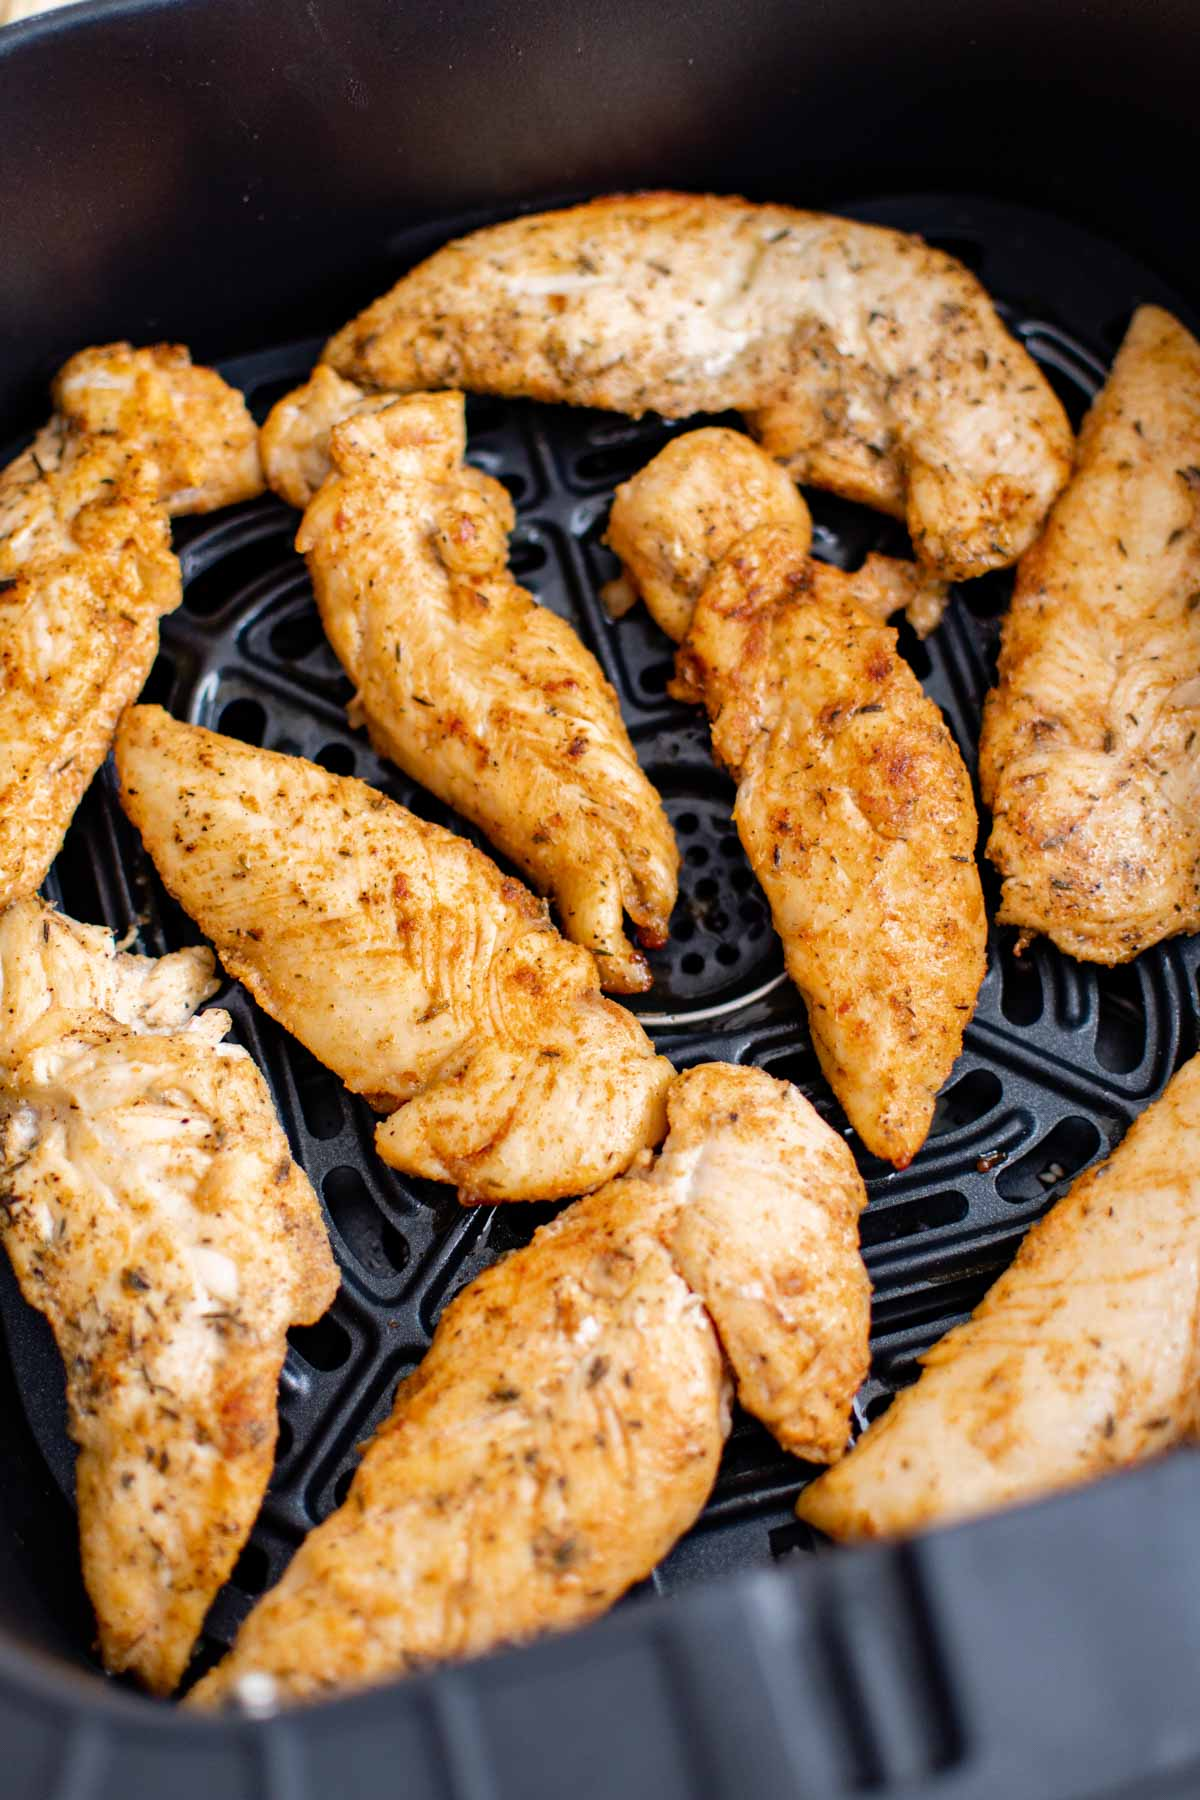 close up view of the cooked chicken tenders inside the air fryer basket